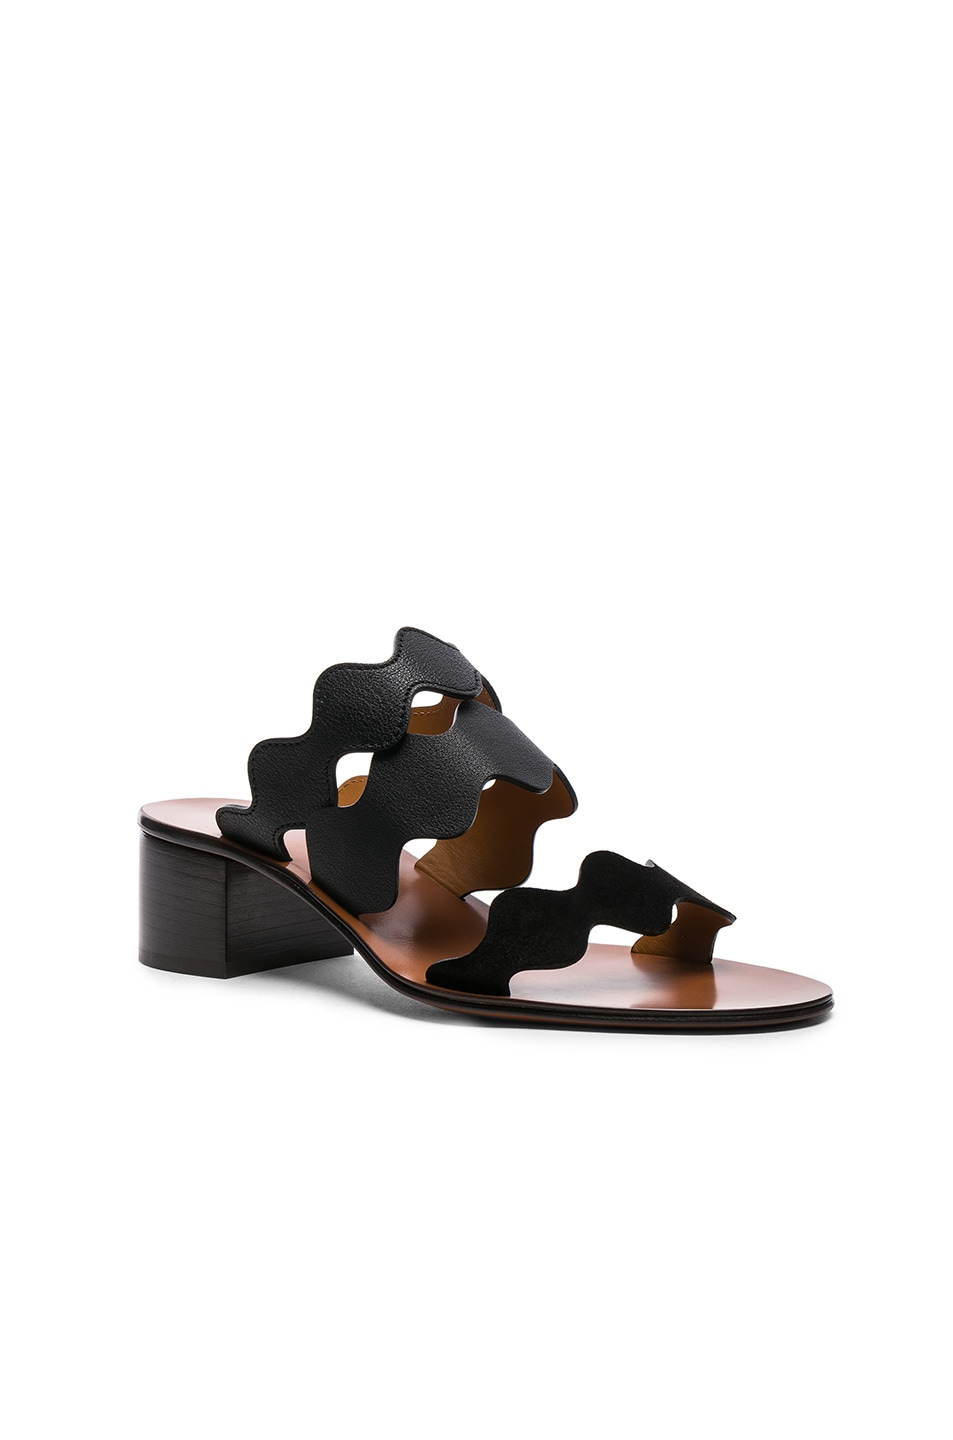 Image 2 of Chloe Lauren Leather & Suede Sandals in Black